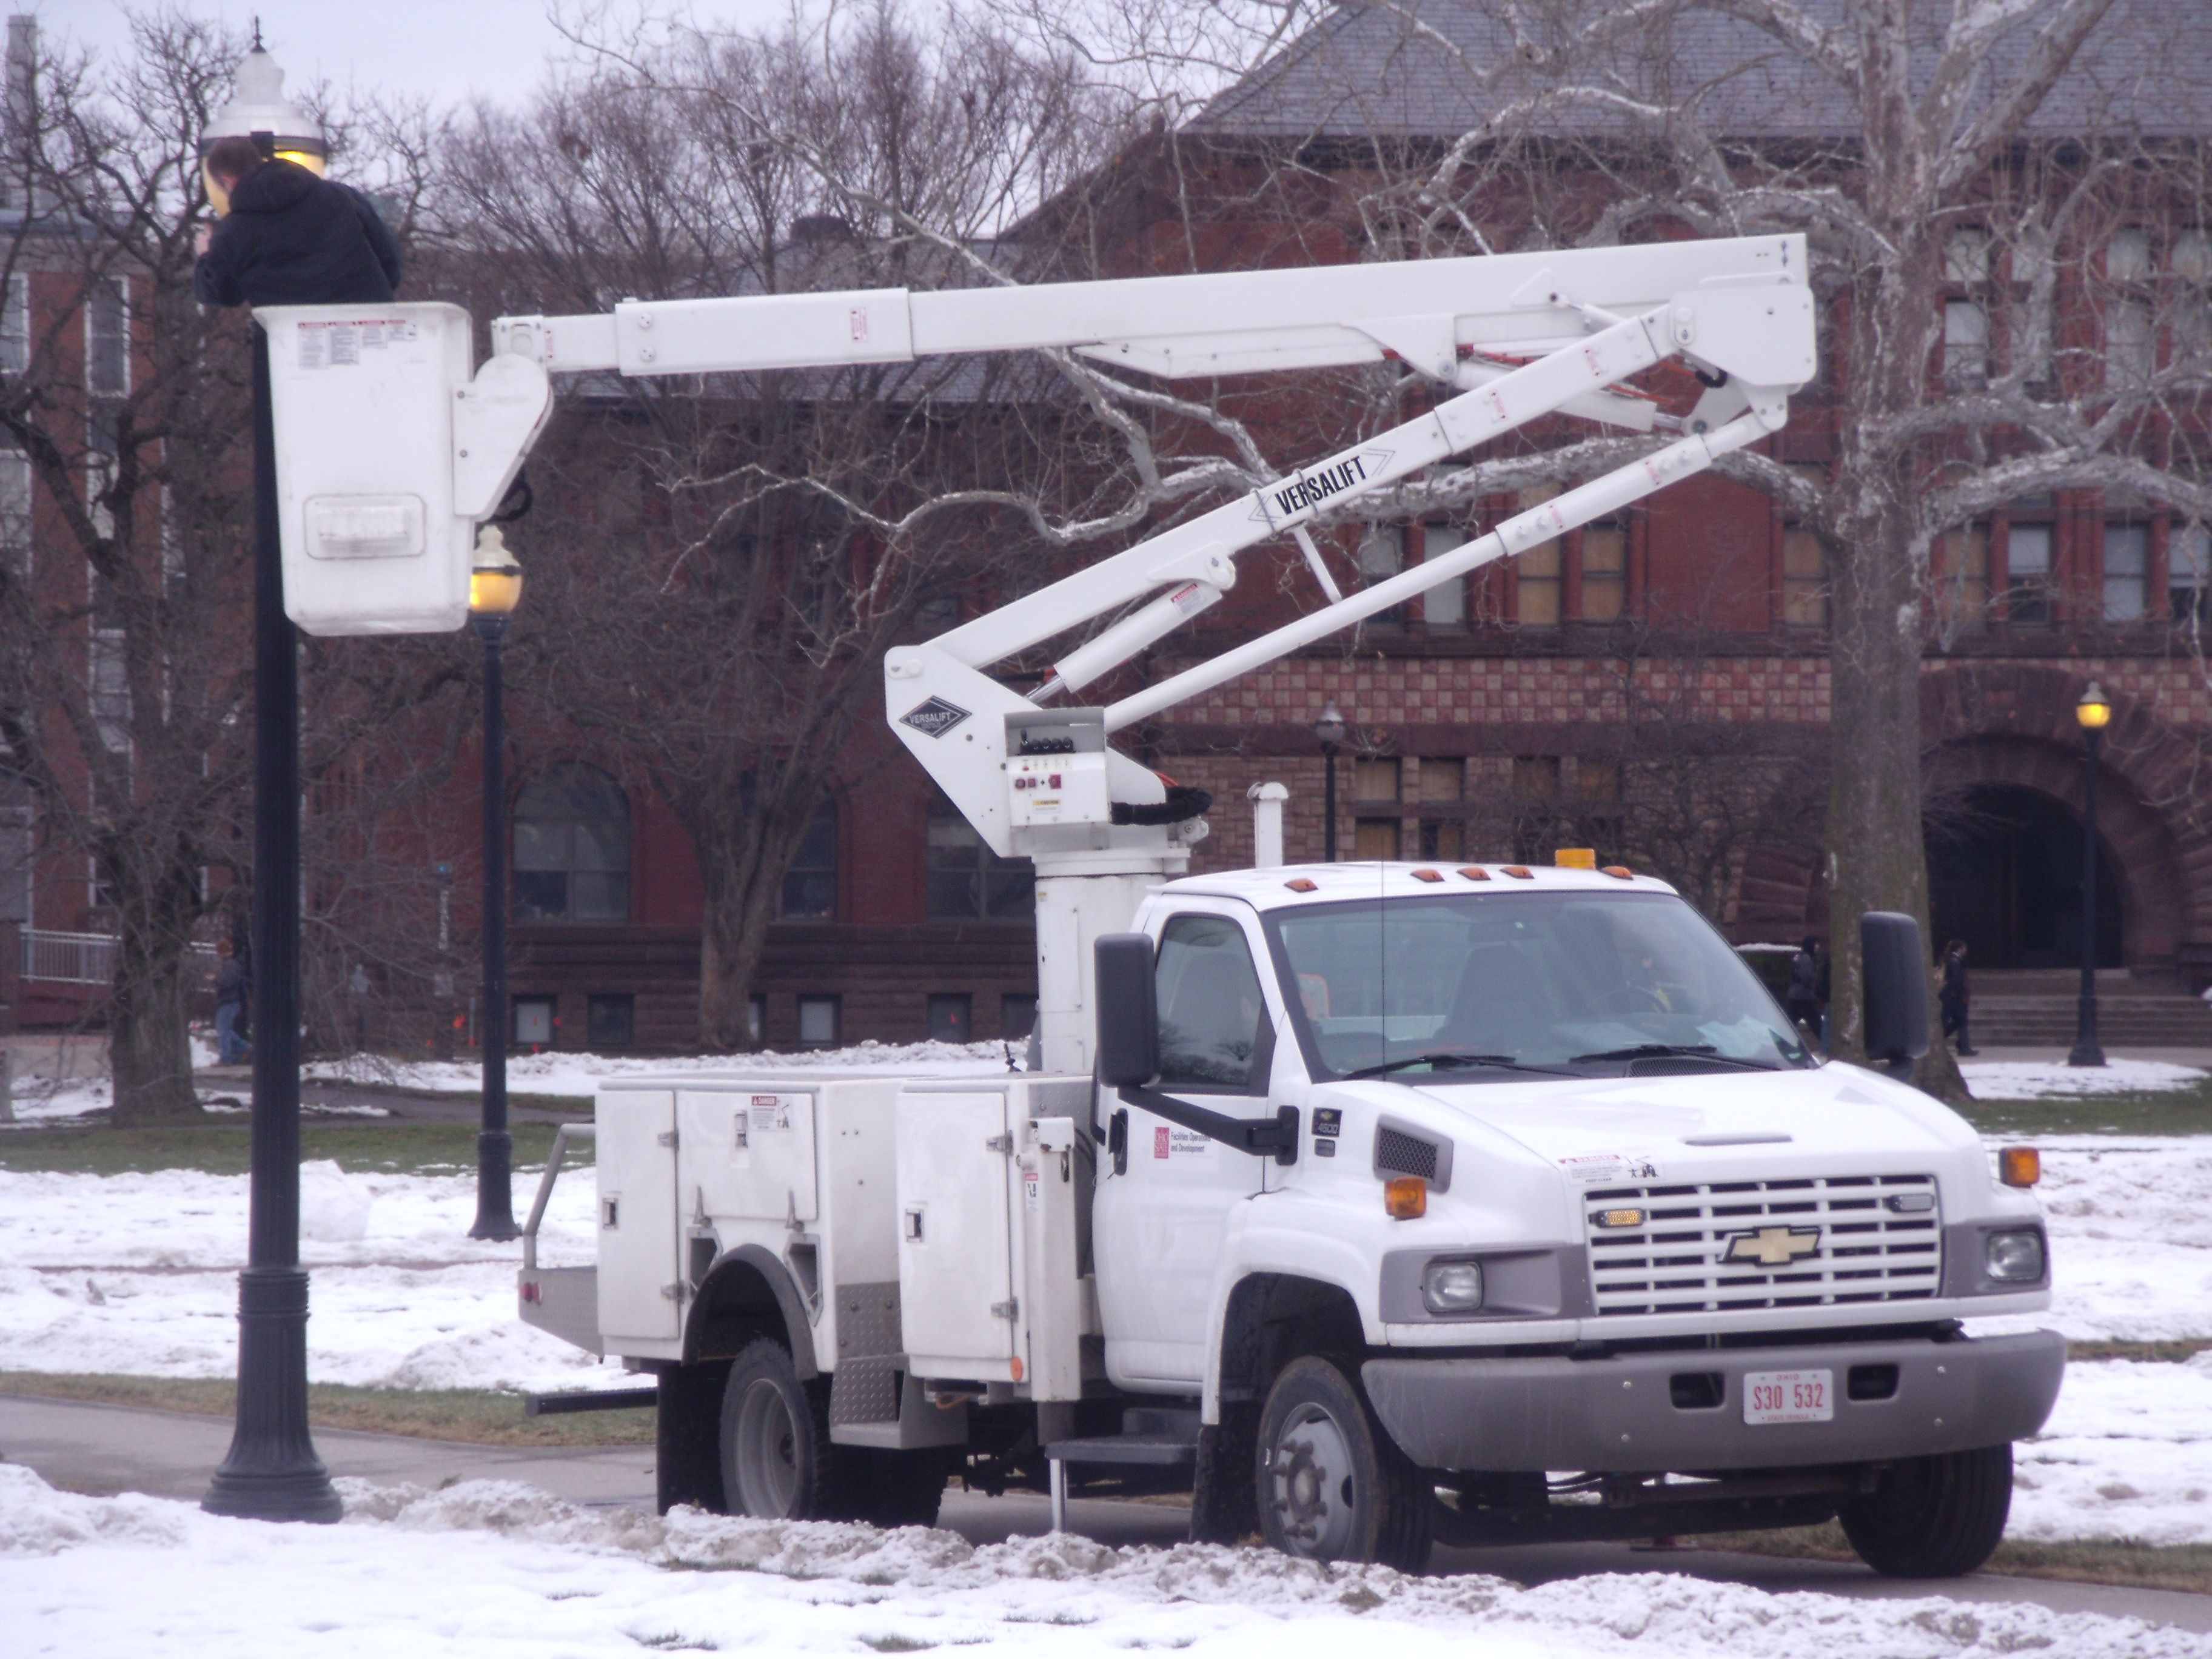 A Bucket Truck Is More Formally Known As An Articulated Boom Aerial Device Accidents With Bucket Trucks Maybe A Result Of Bucket Truck Heavy Equipment Trucks